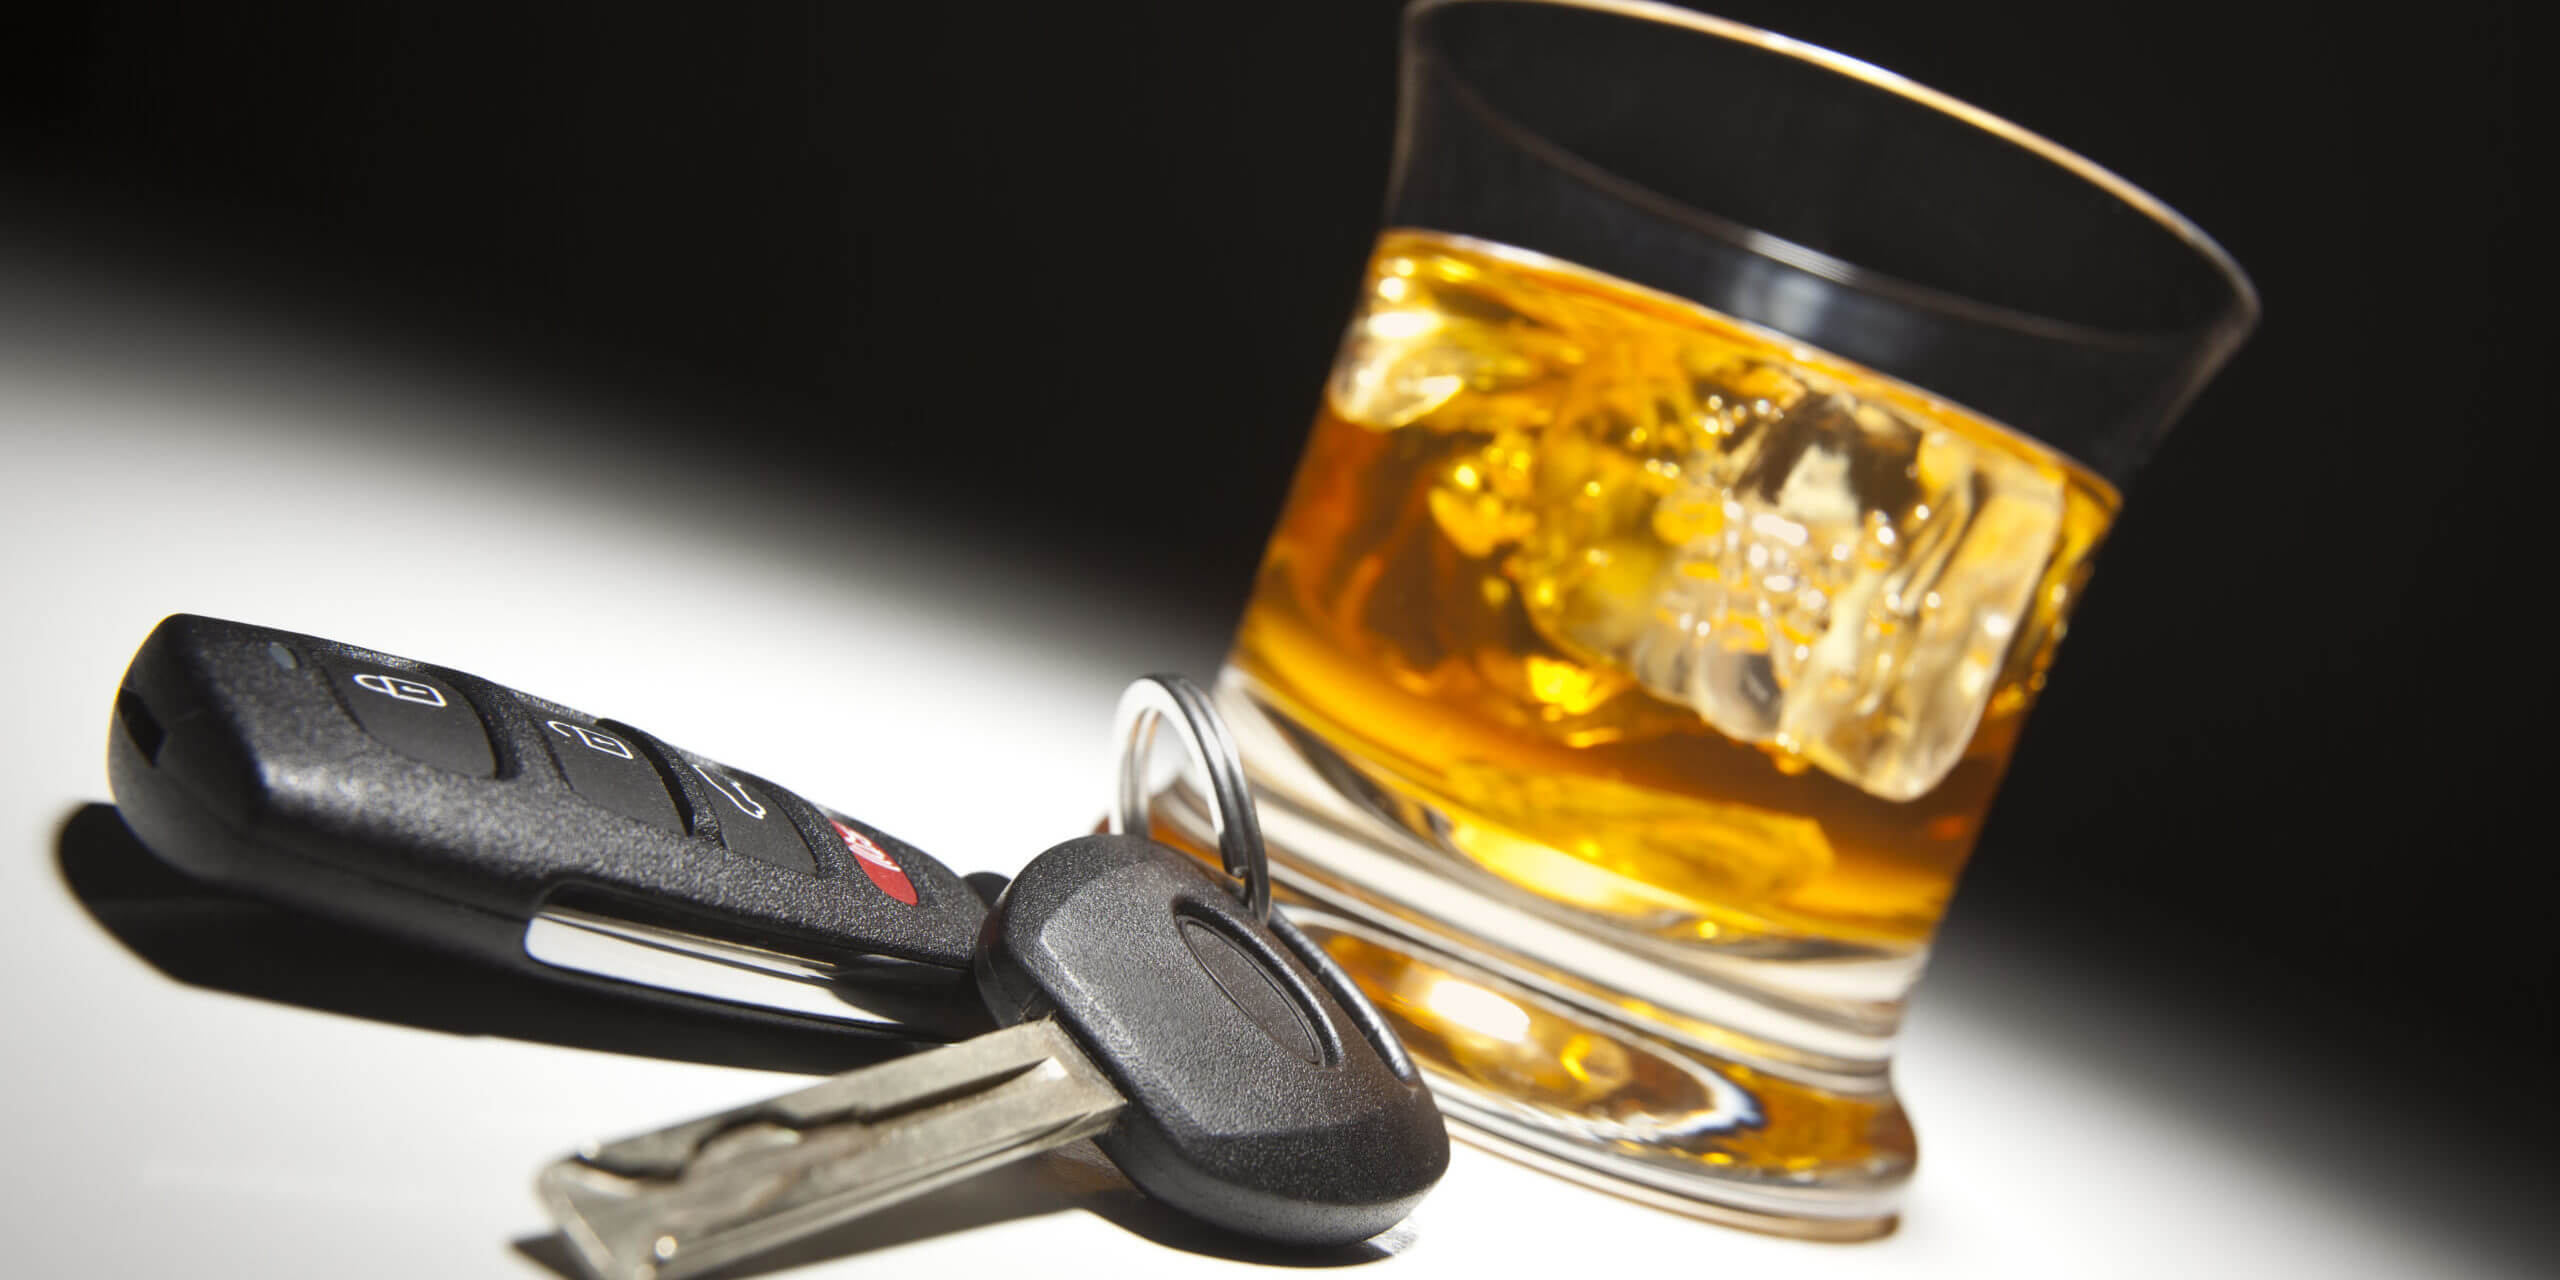 Alcohol with Car Key